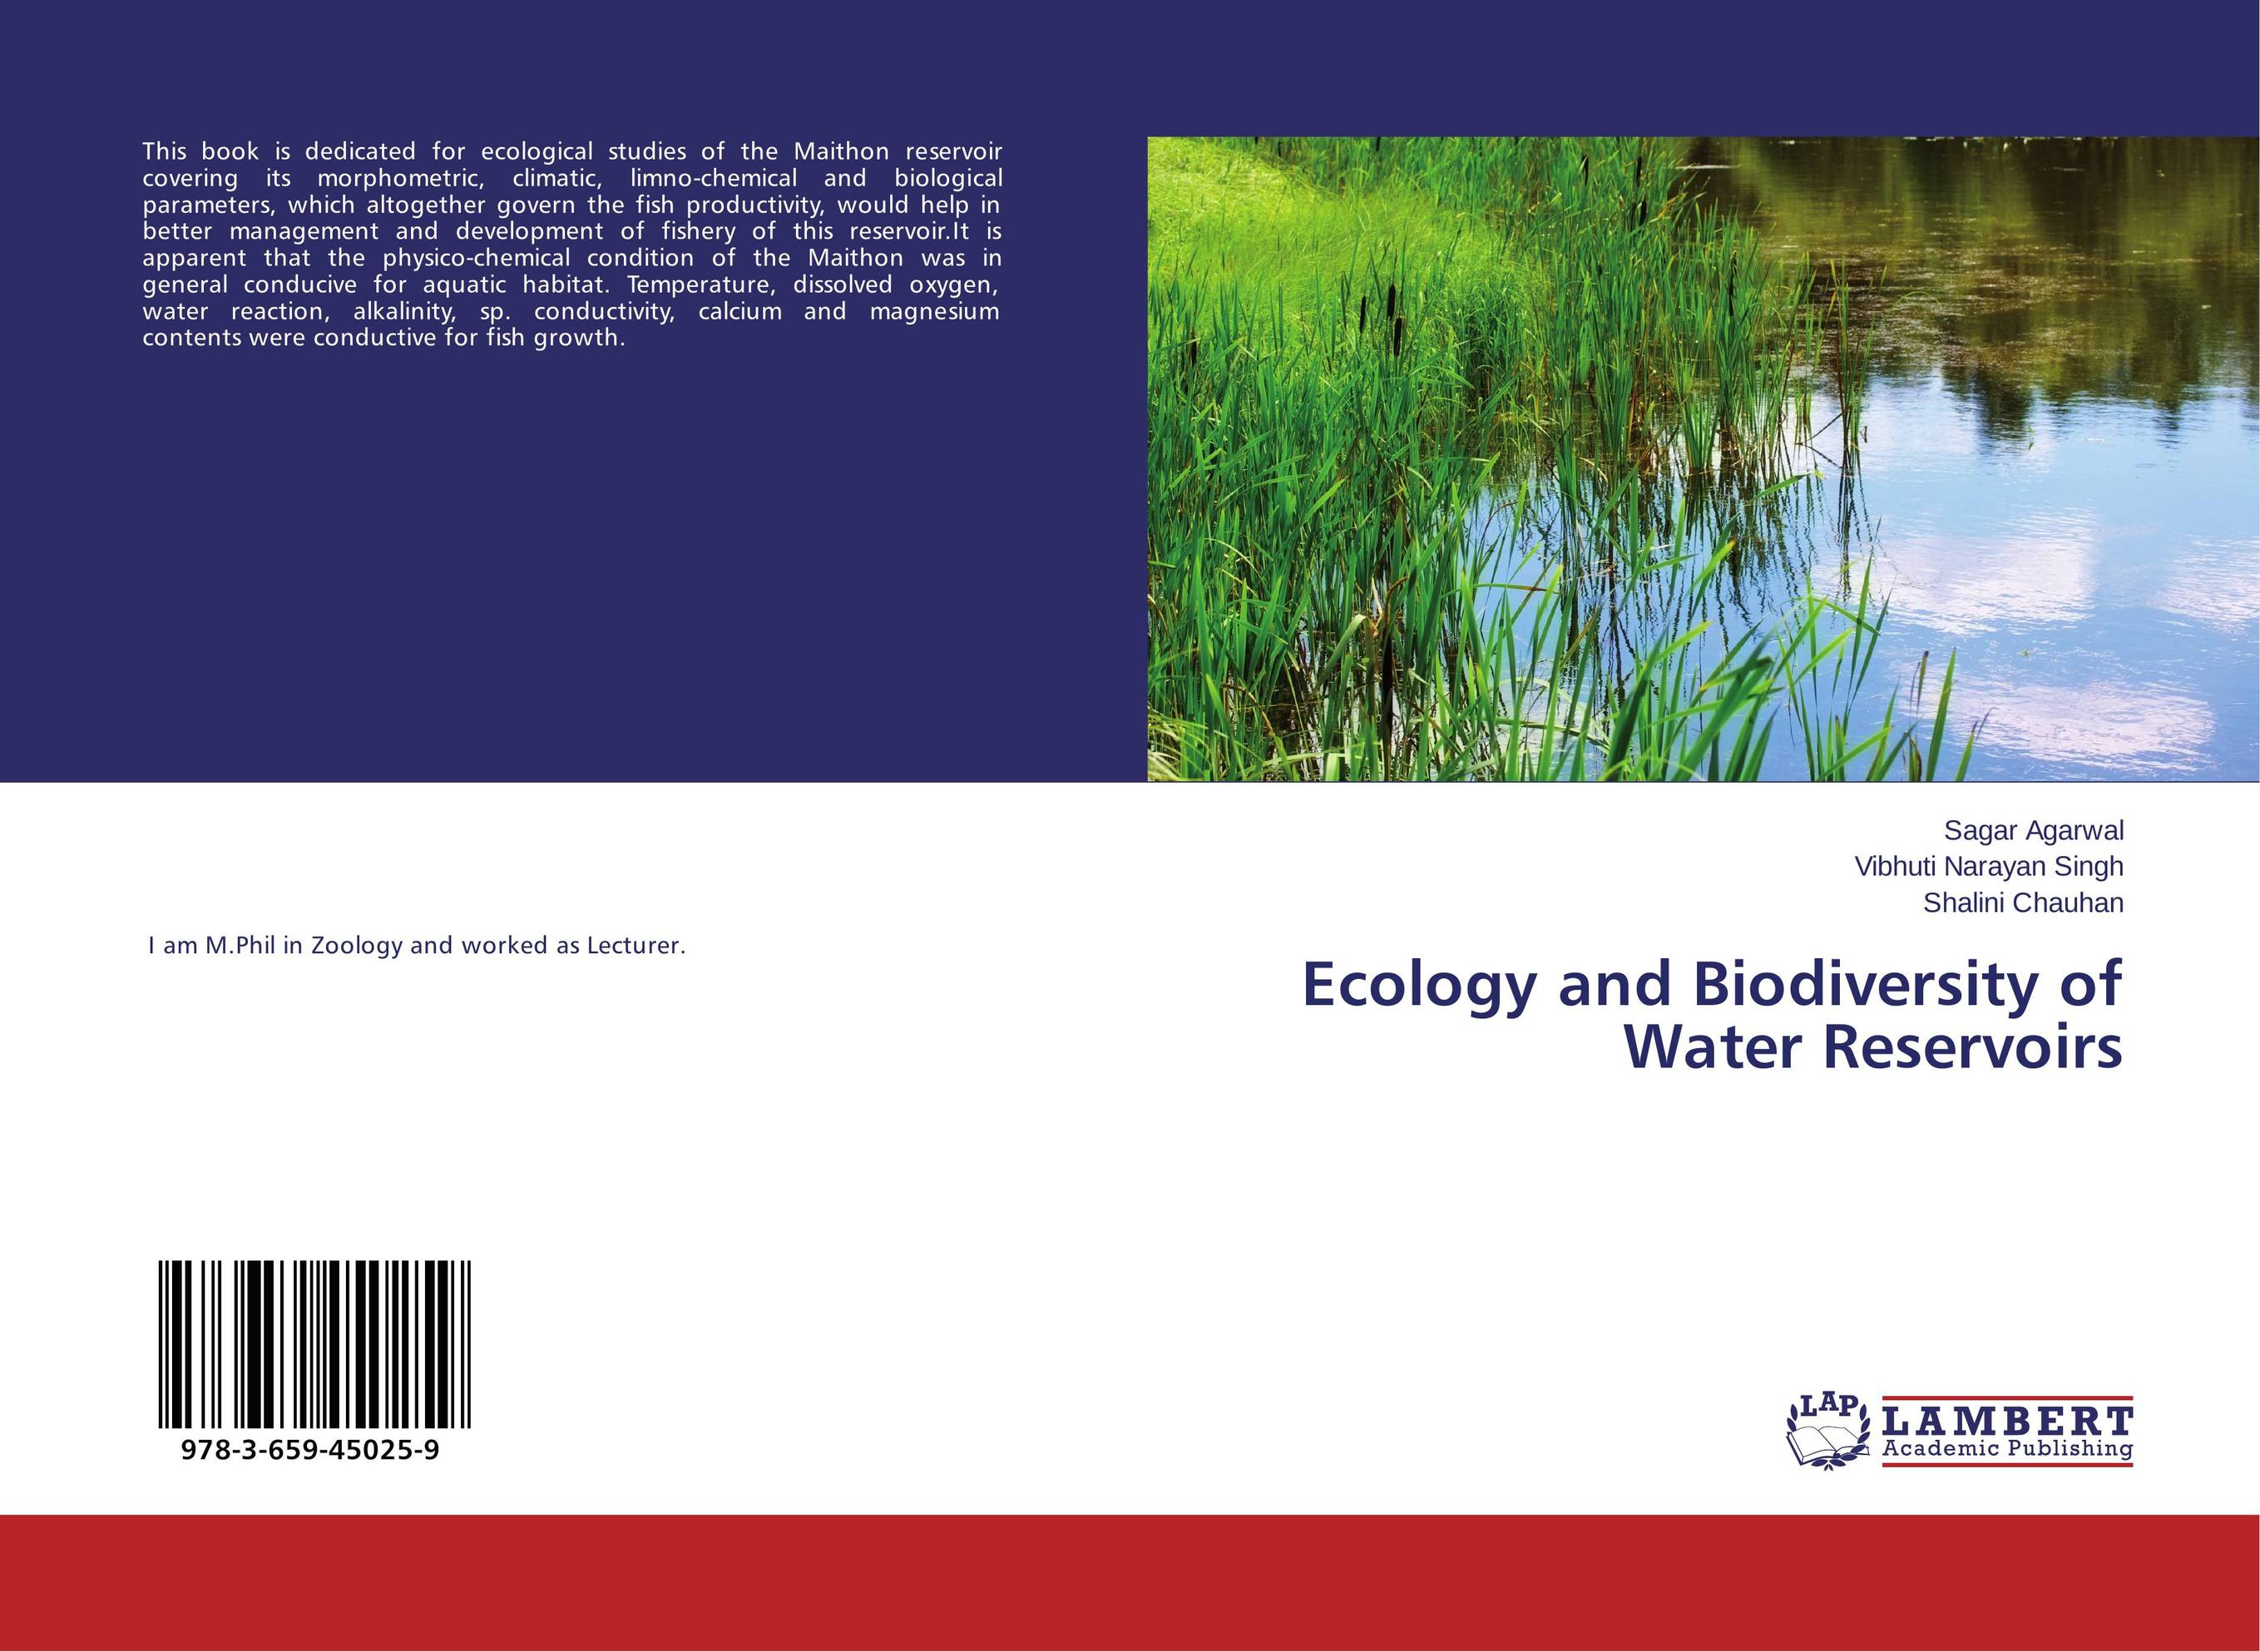 Ecology and Biodiversity of Water Reservoirs